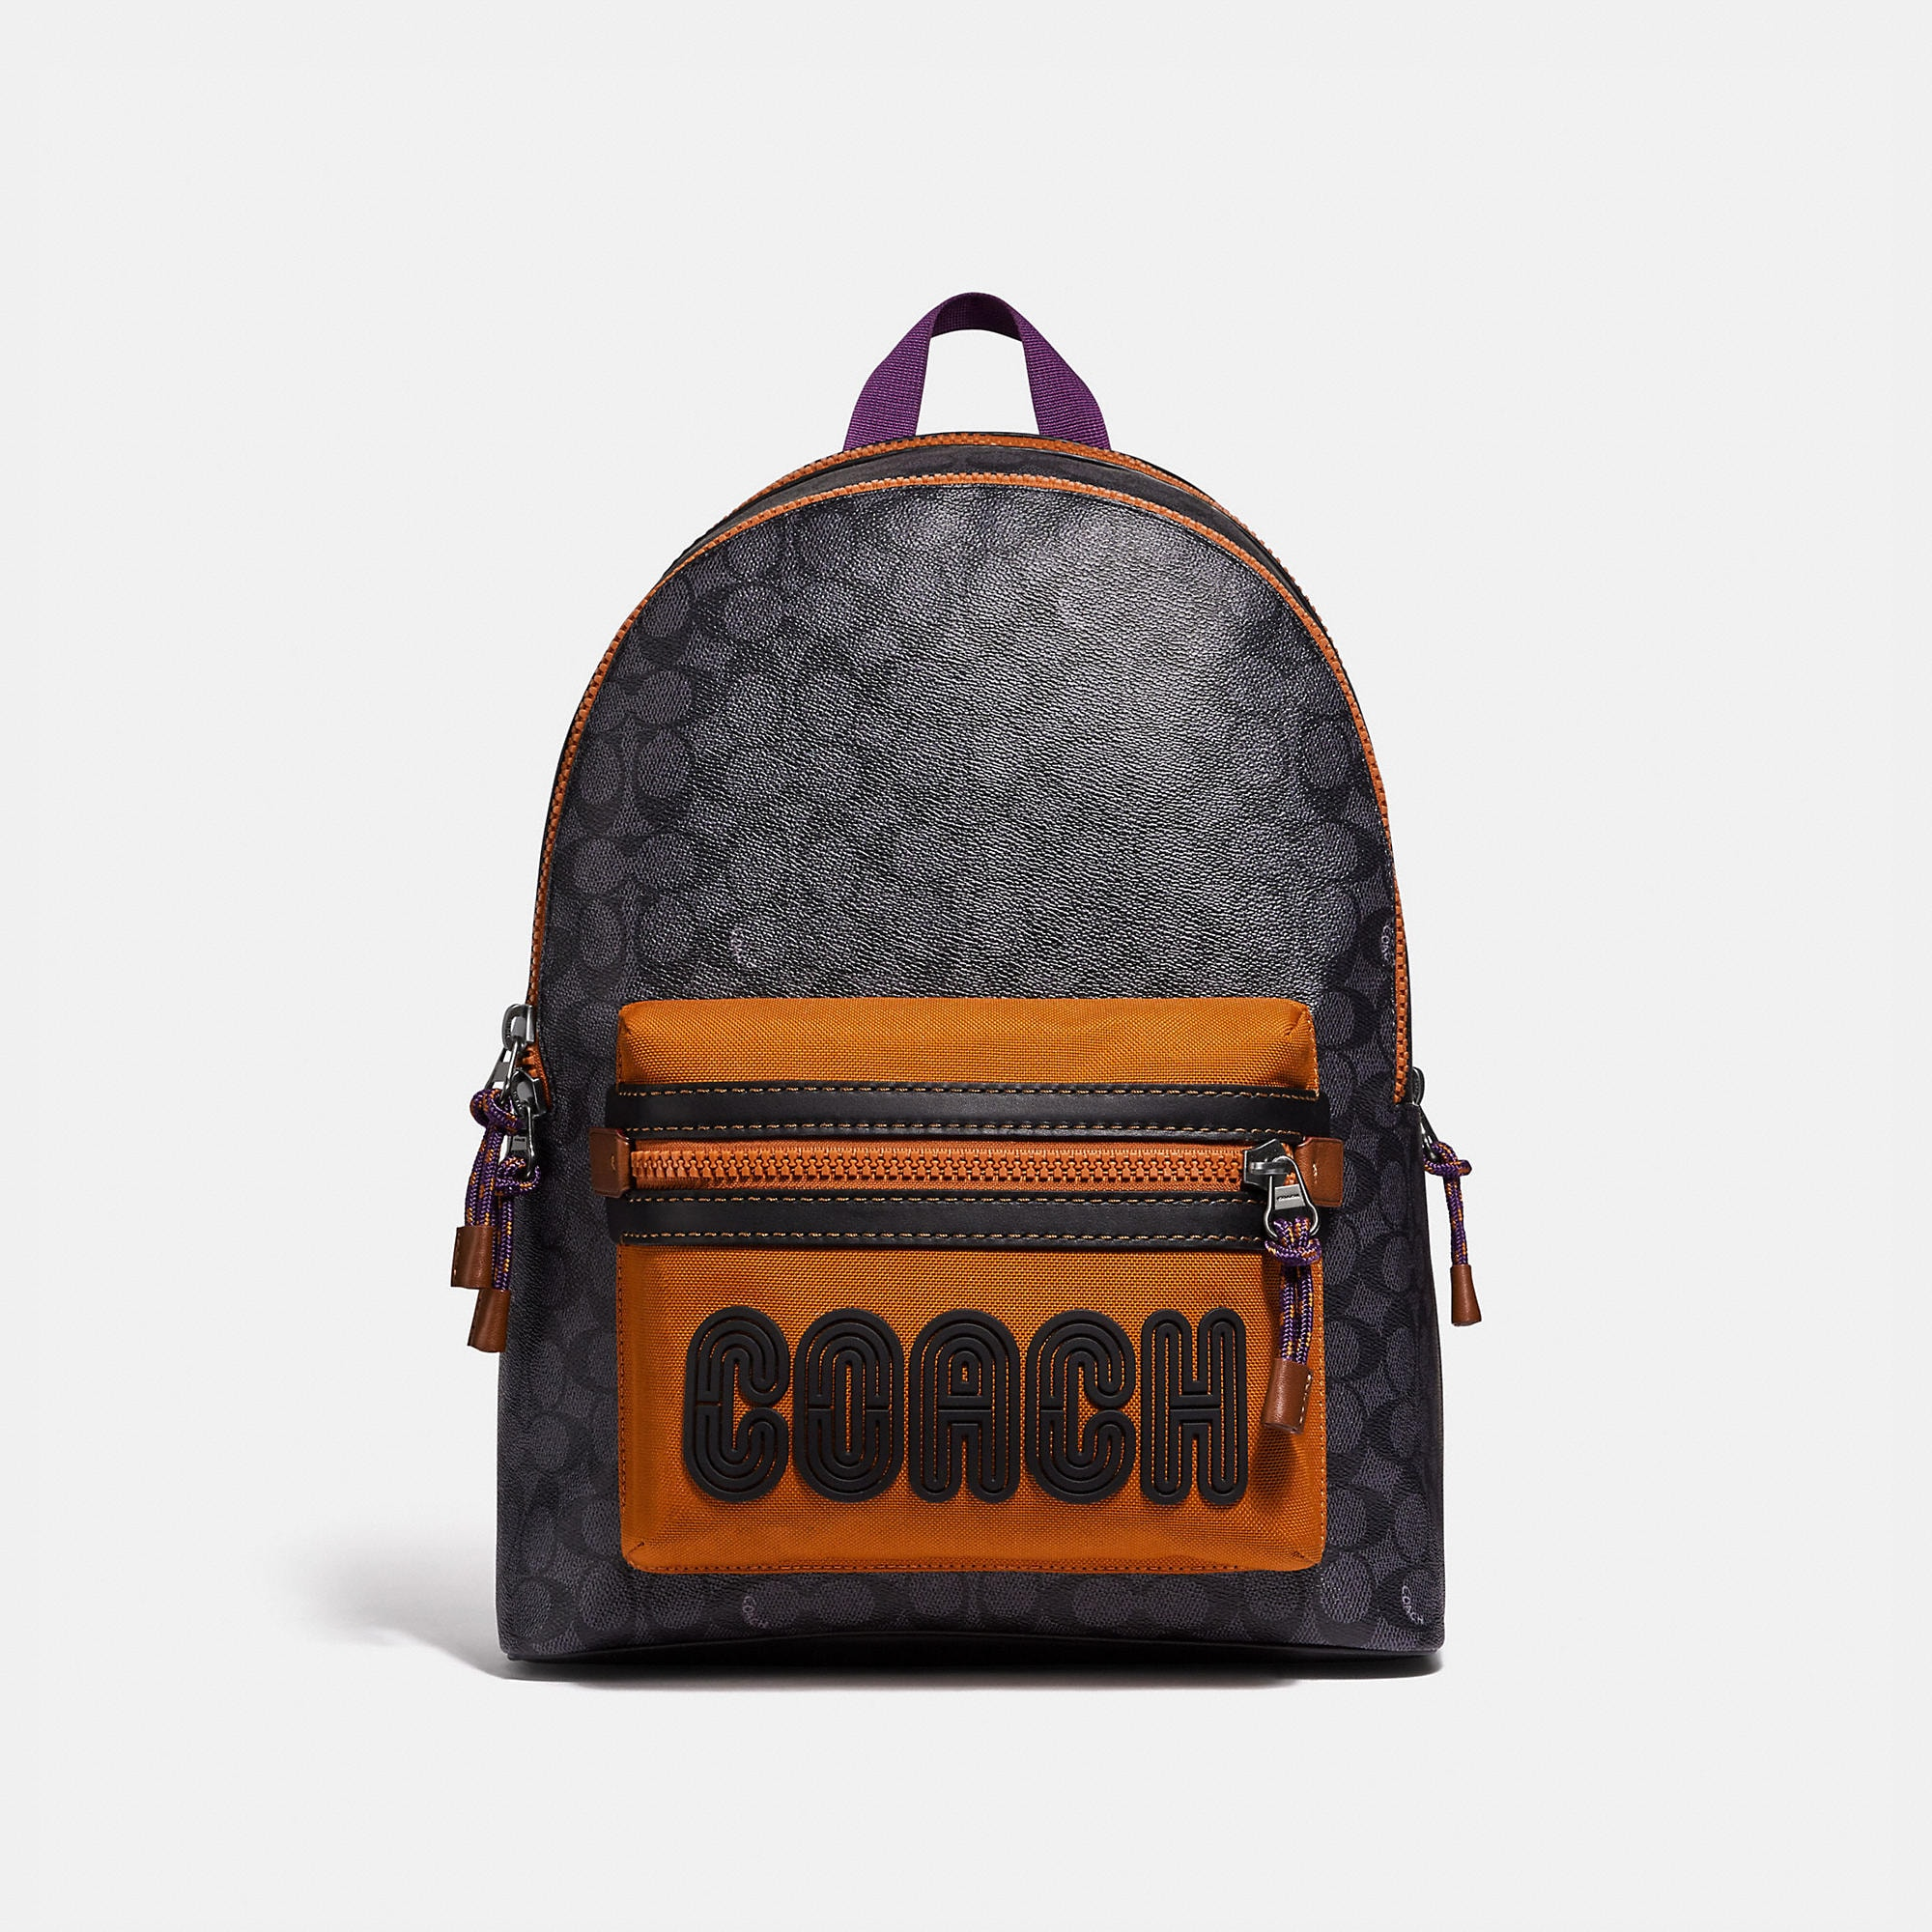 Coach COACH ACADEMY BACKPACK IN SIGNATURE CANVAS WITH PRINT